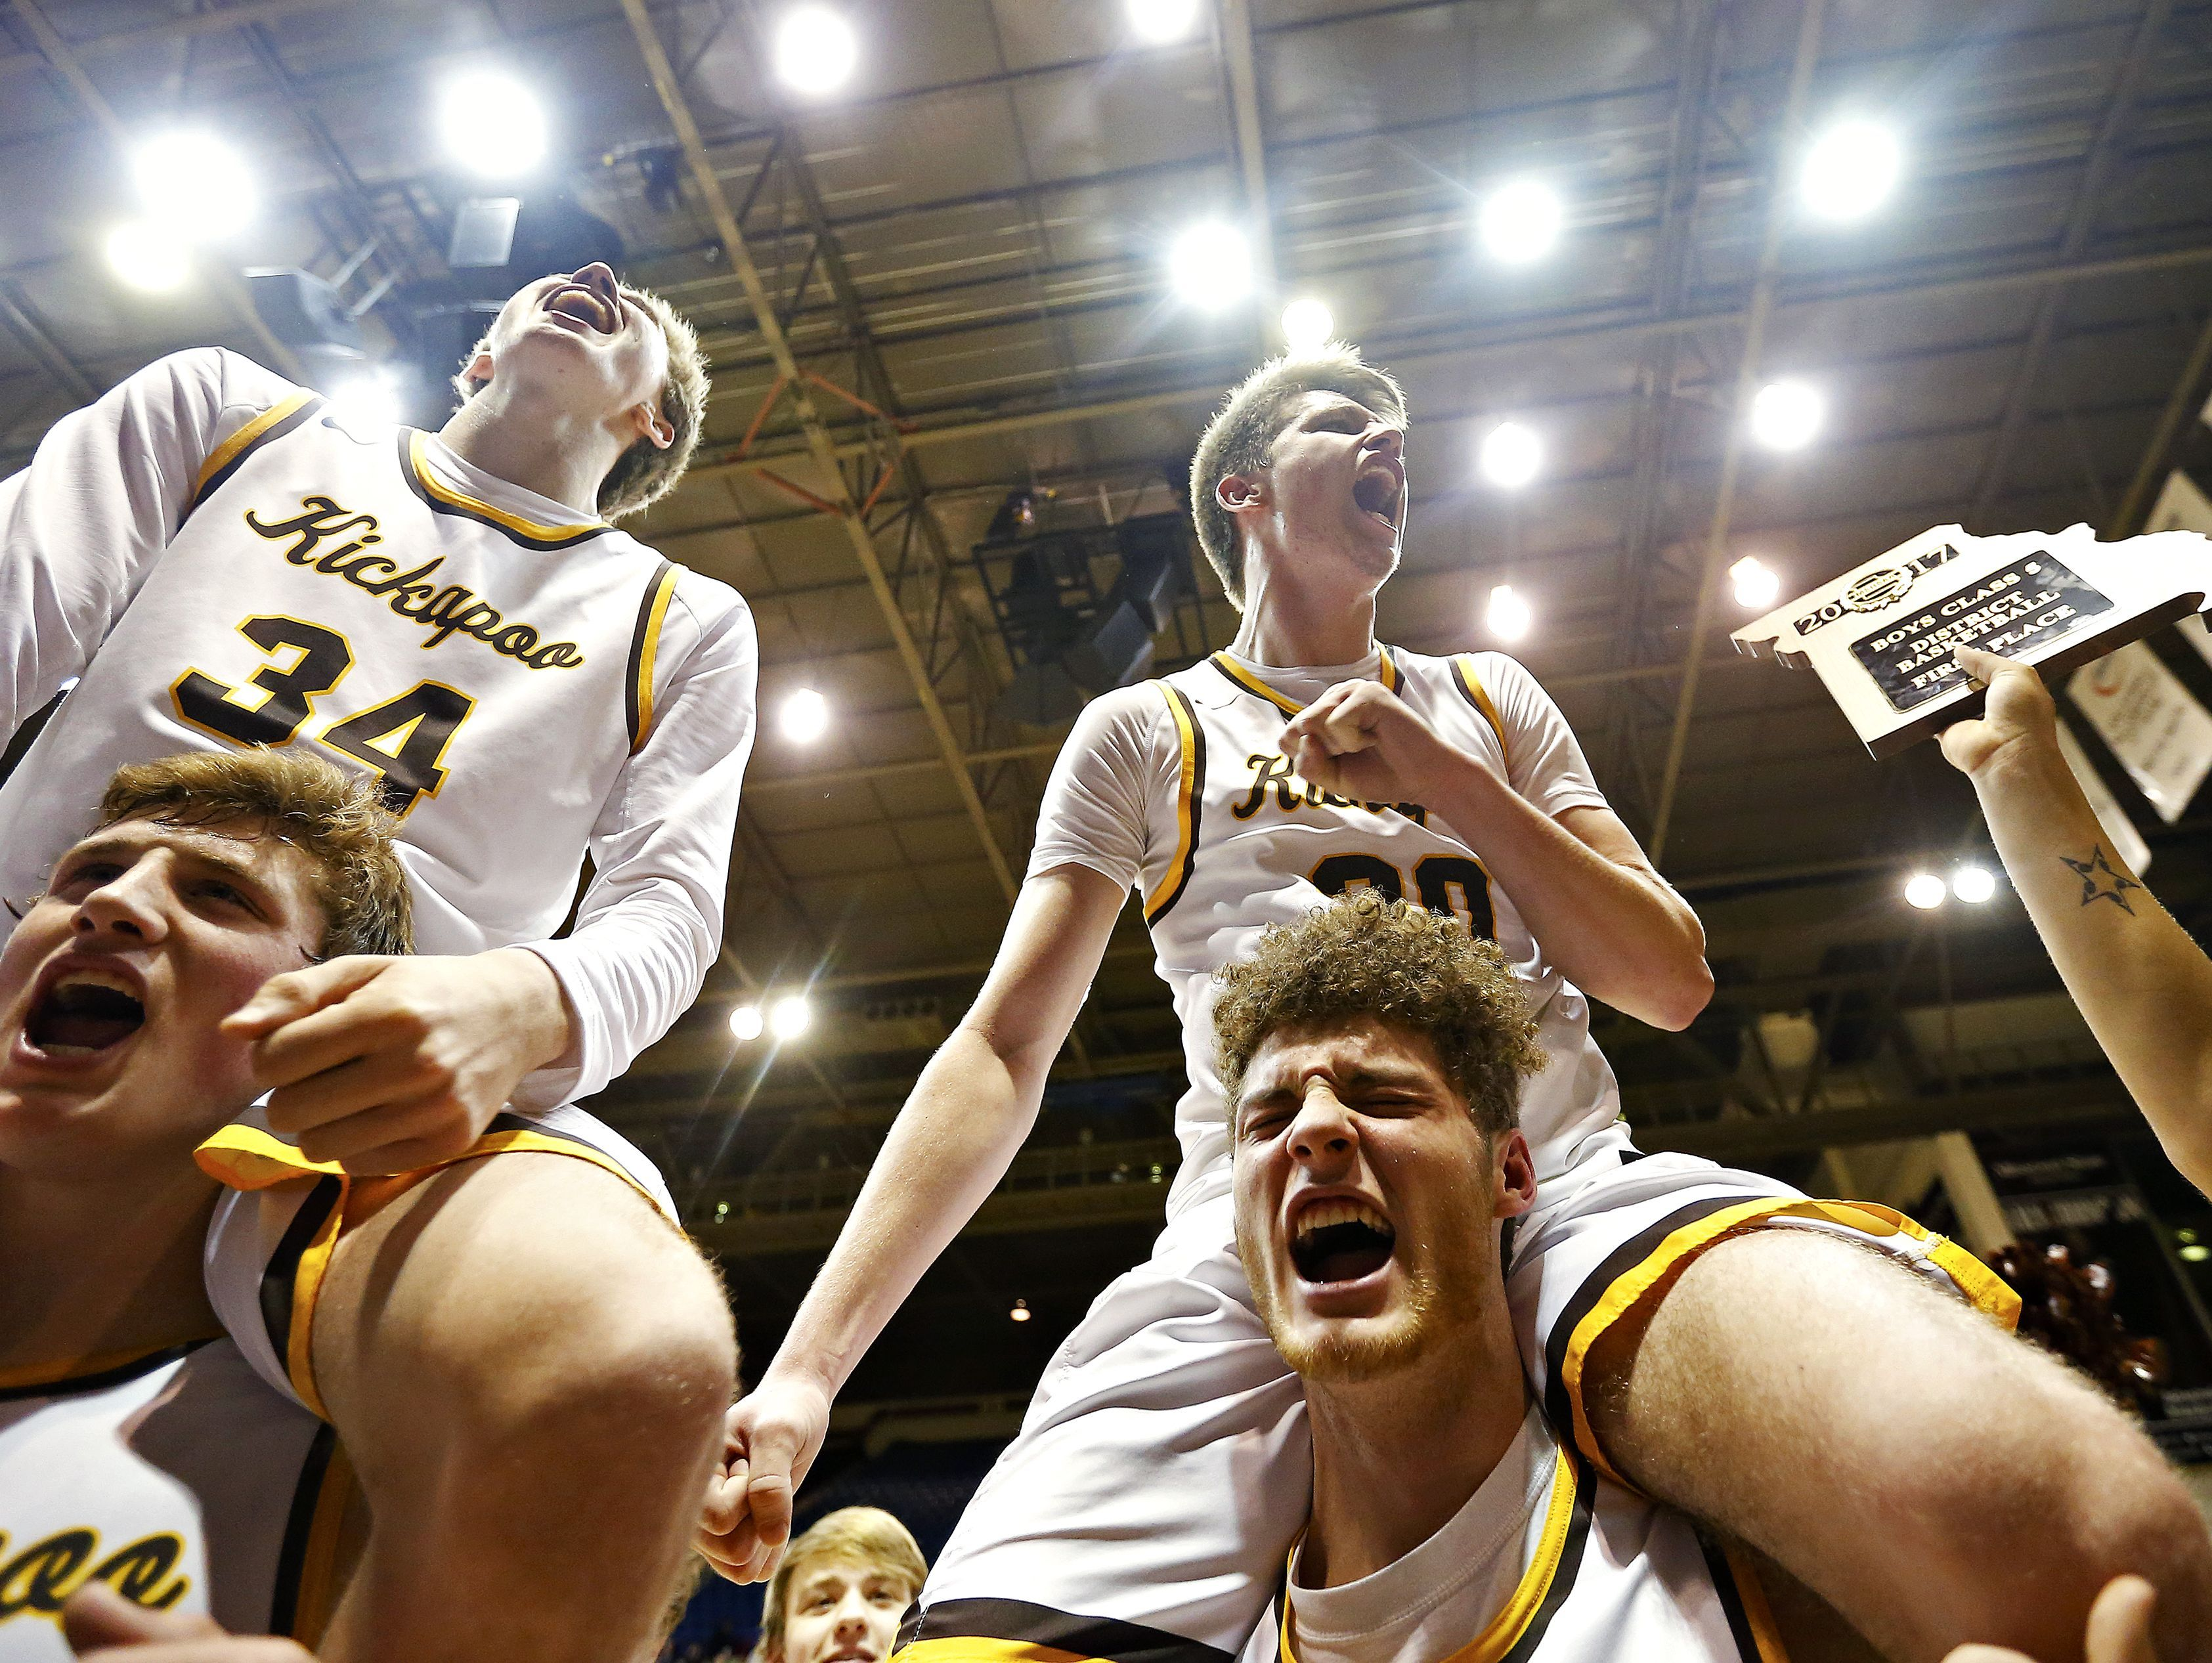 Kickapoo Chiefs players Travis Vokolek (3), Jared Ridder (34), Mitch Closser (44) and Isaac Blakeslee (20) celebrate with their fans after the end of the MSHSAA Class 5 District 11 championship playoff game between the Kickapoo Chiefs and the Ozark Tigers at Hammons Student Center in Springfield, Mo. on March 2, 2017. The Kickapoo Chiefs won the game 52-41.